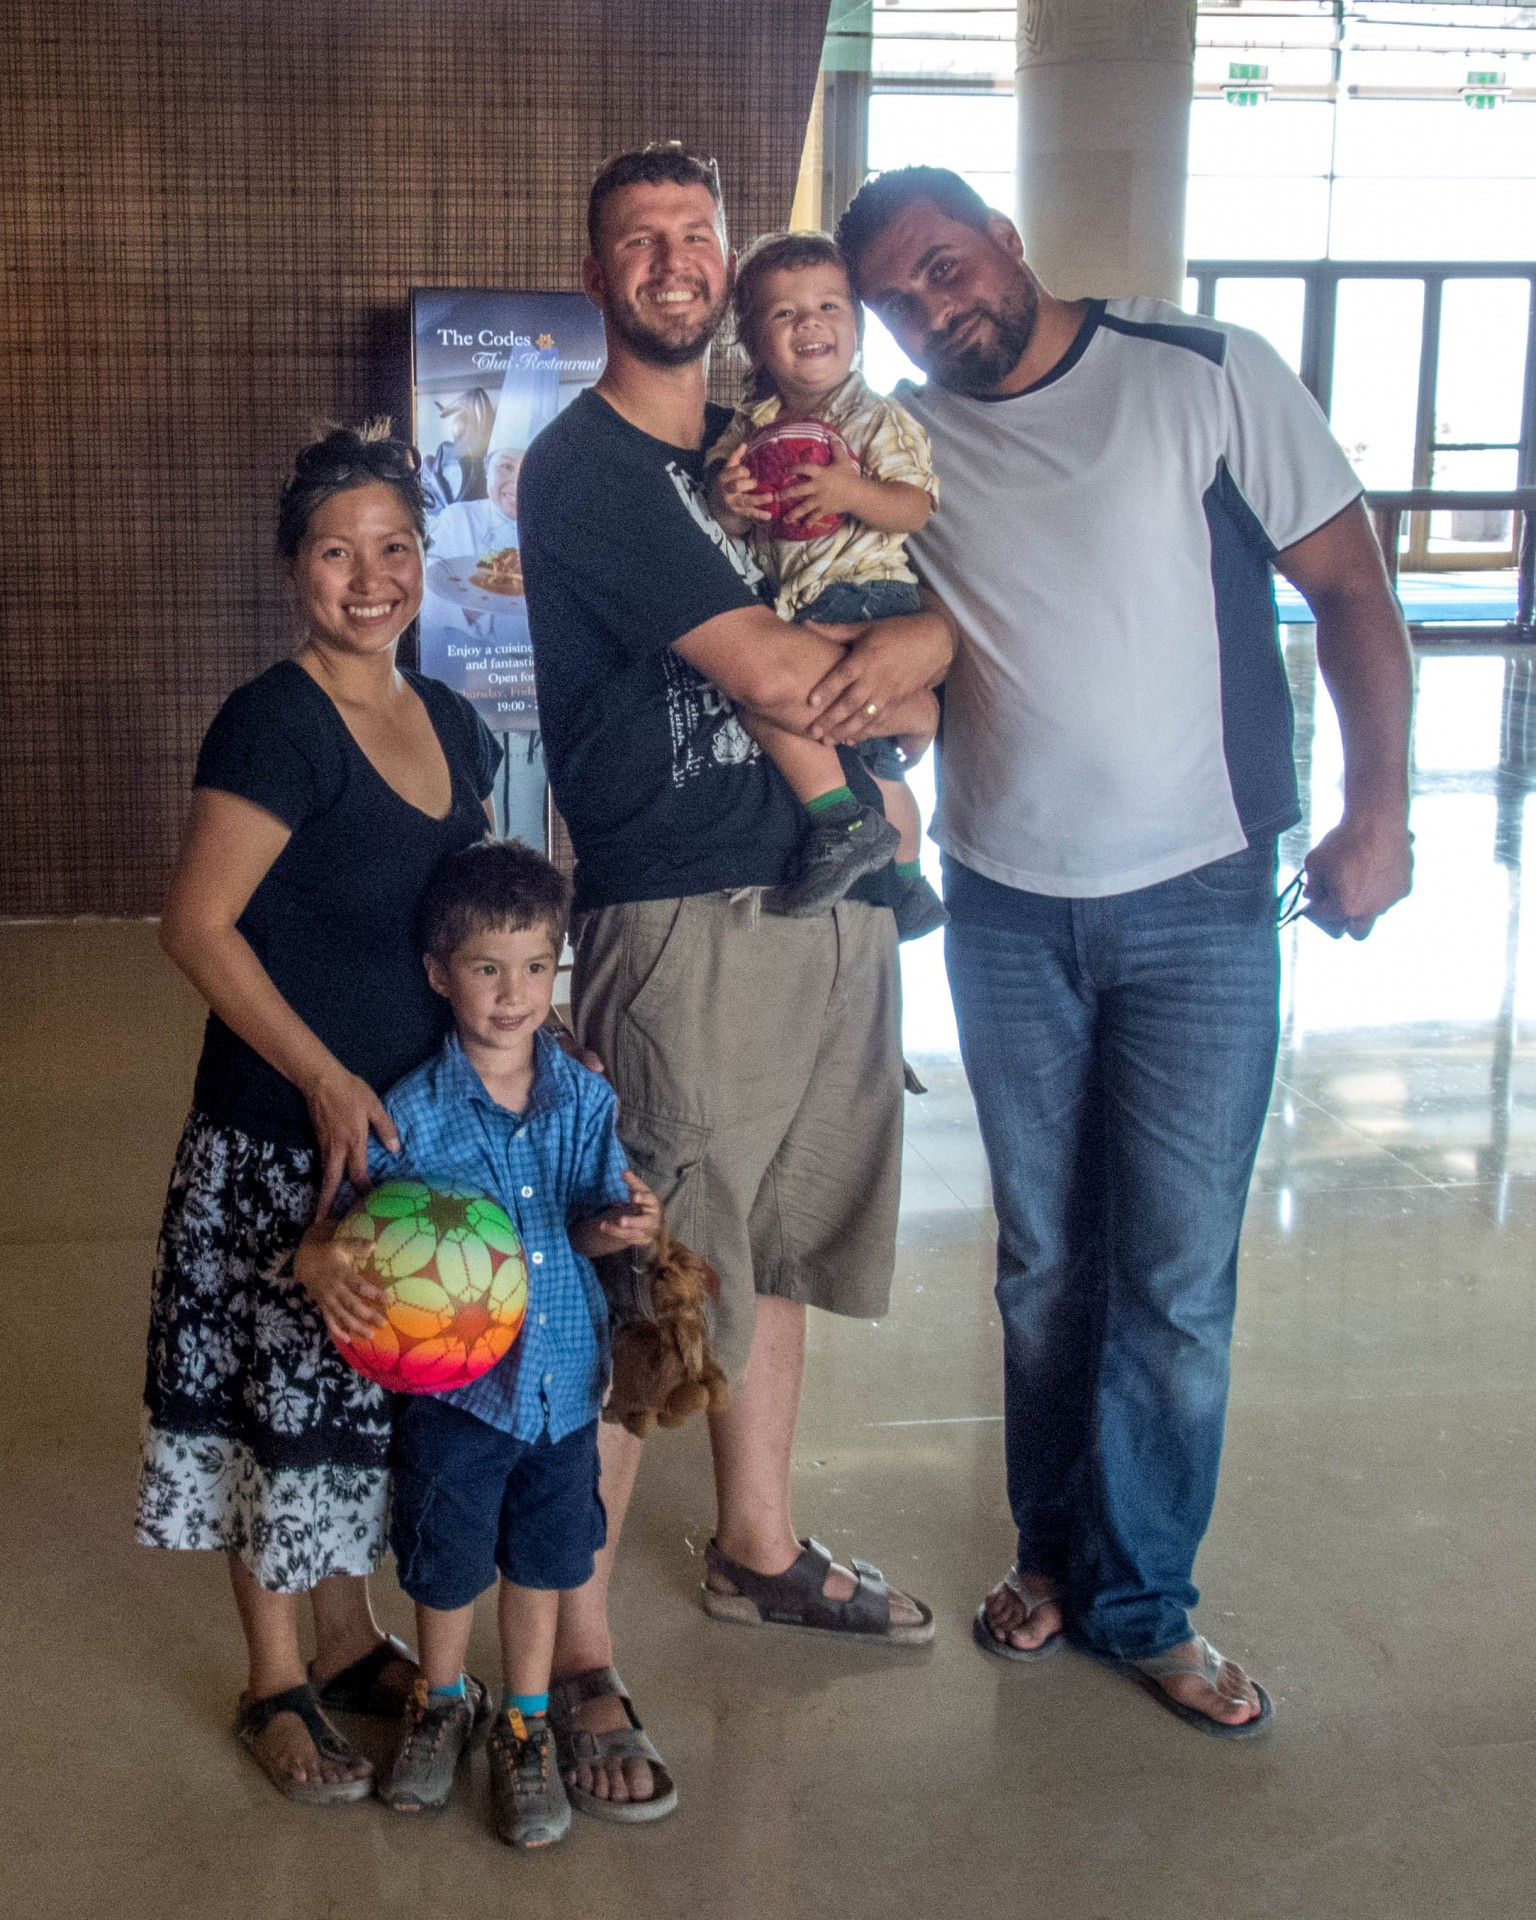 three adults and 2 young children smile in the lobby of the kempinski ishtar hotel